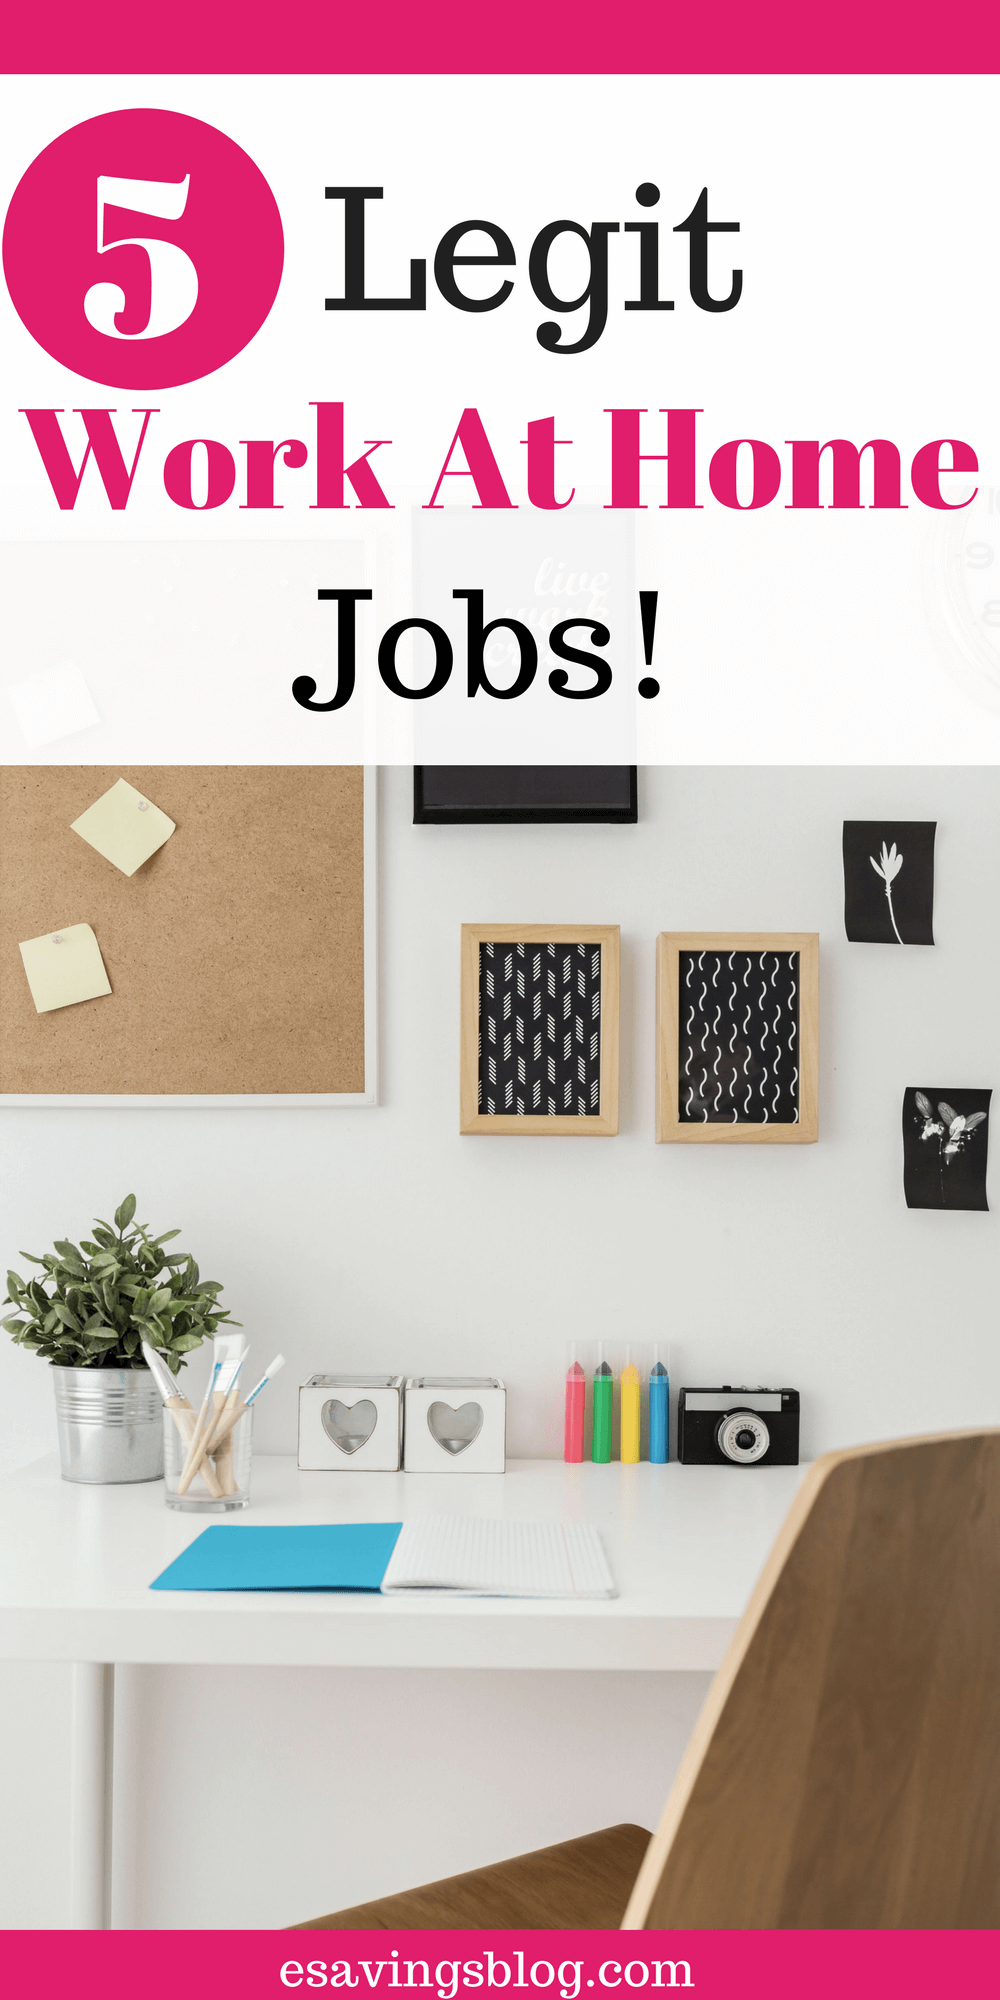 5 Legit Work At Home Jobs | Pinterest | Early retirement, Check and ...